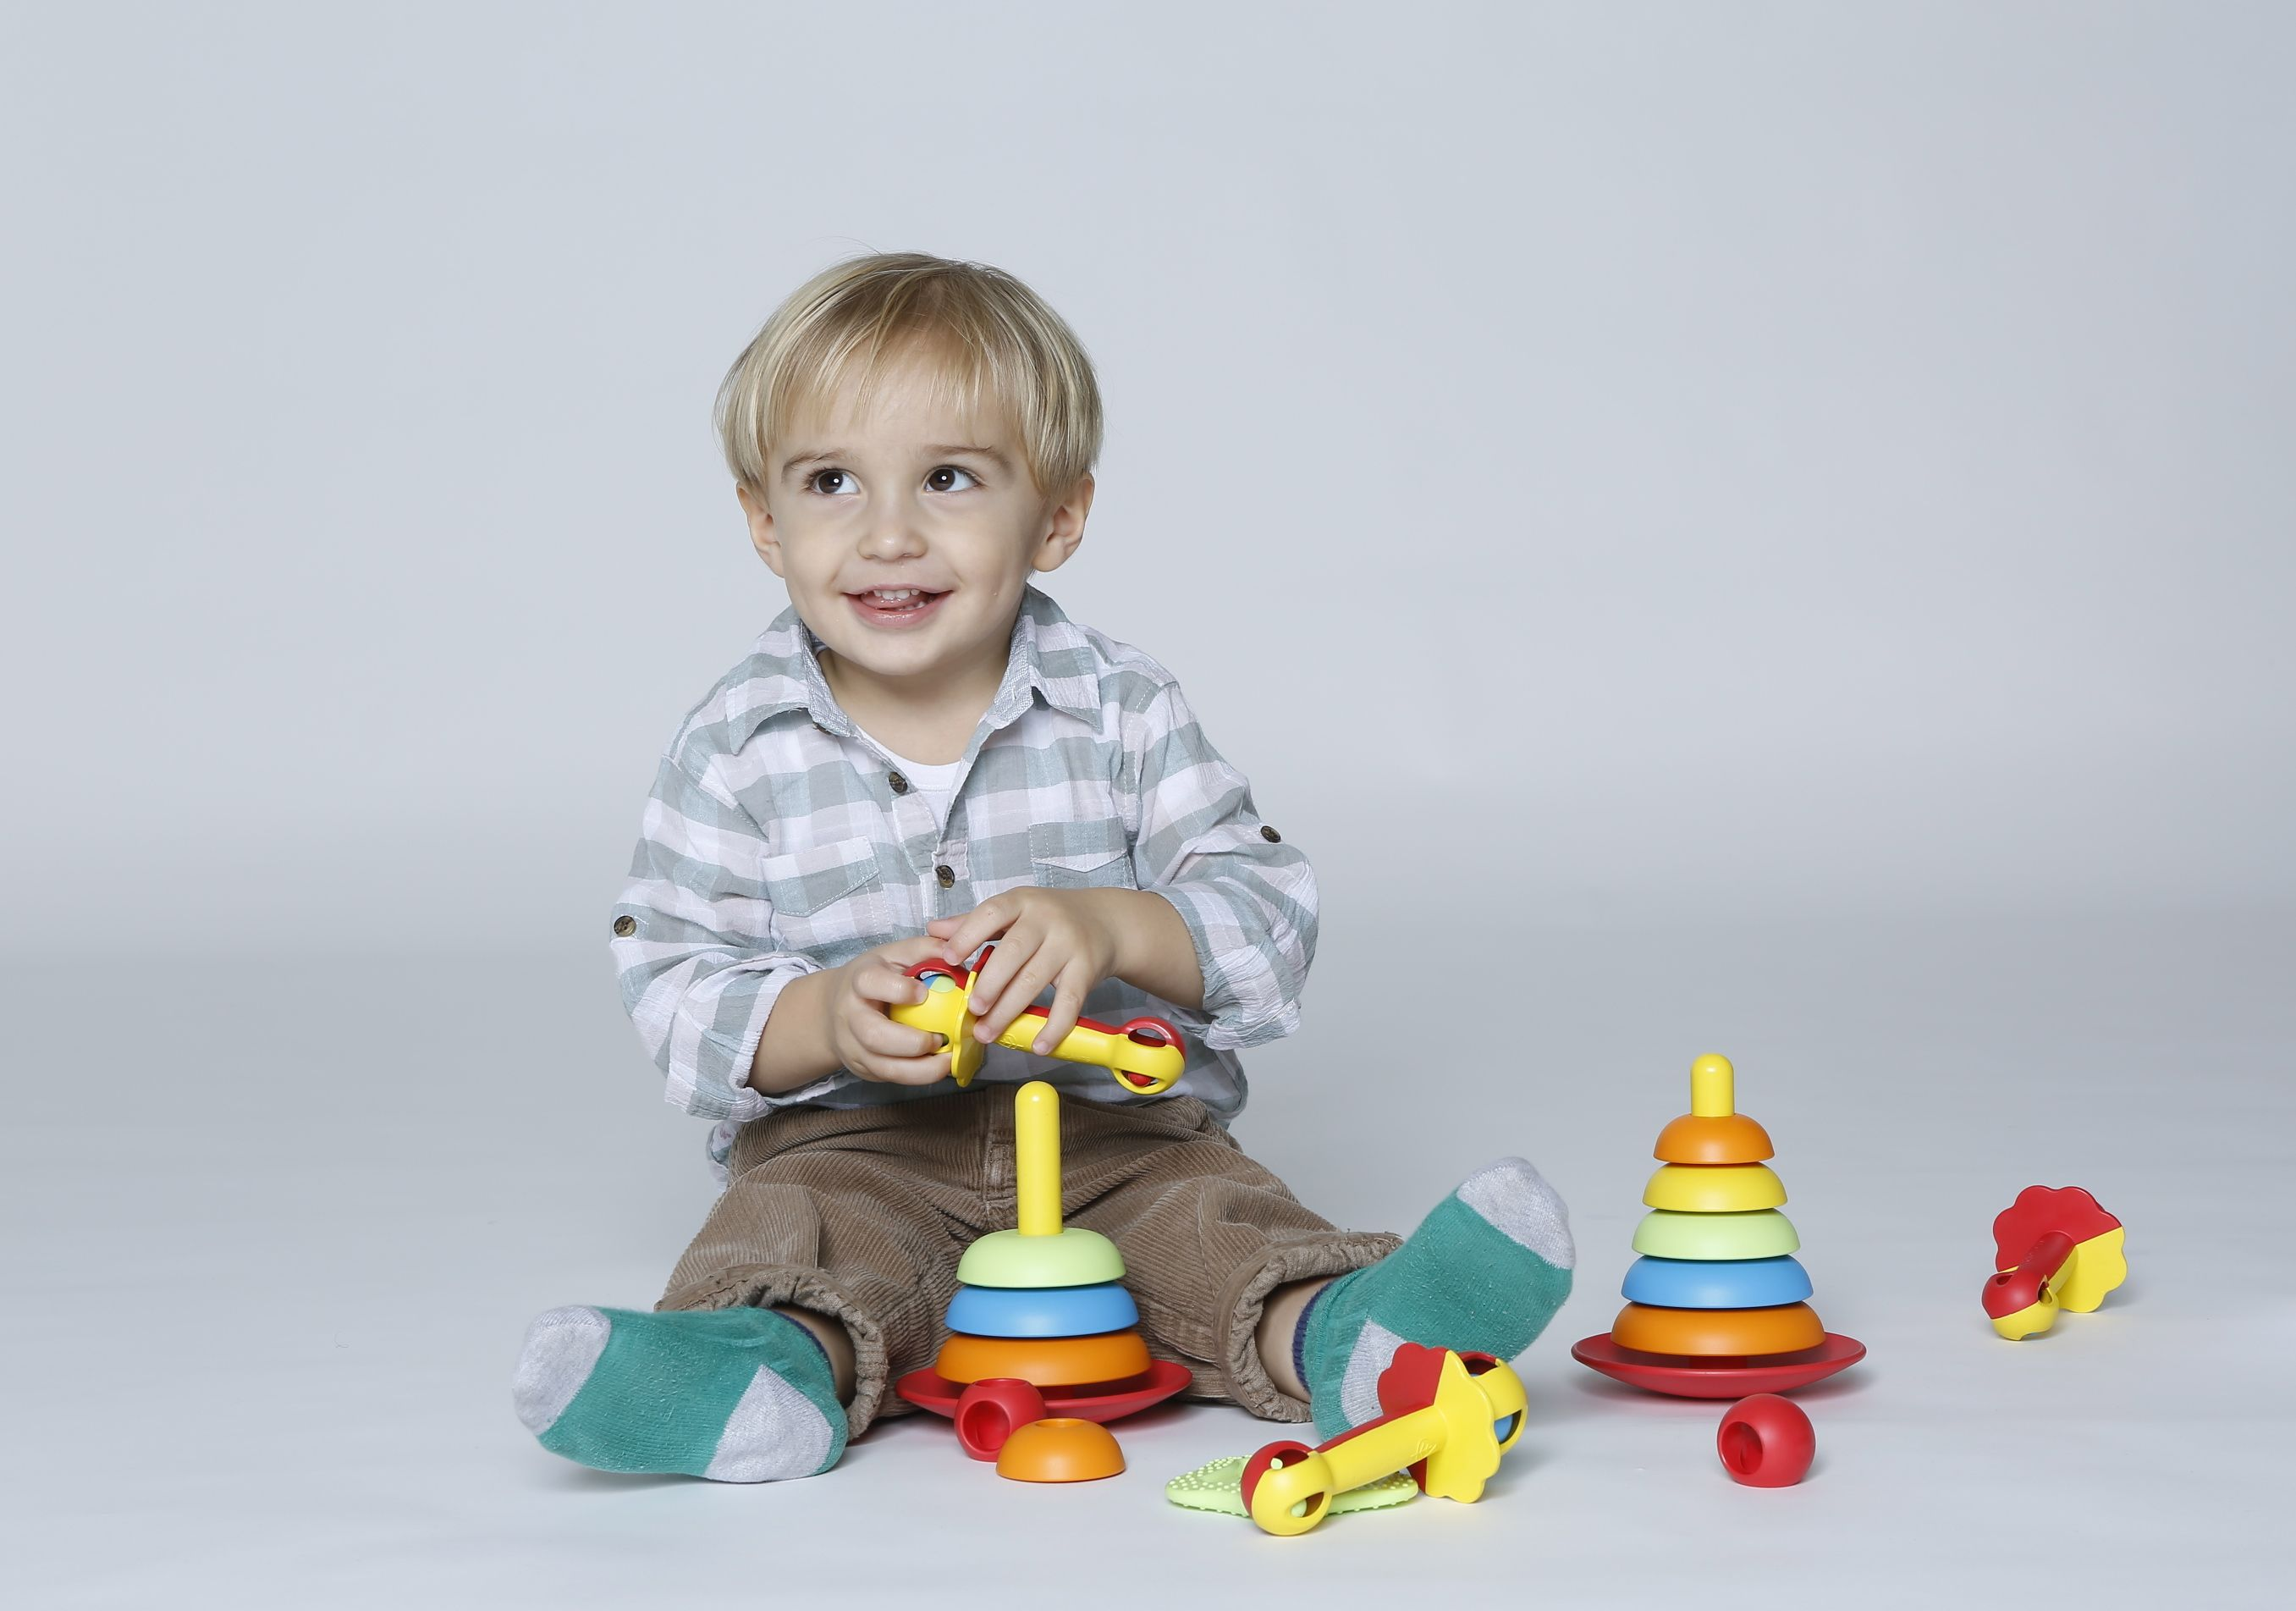 Safe Baby Toys : Safe biobased plastic toys for years old made